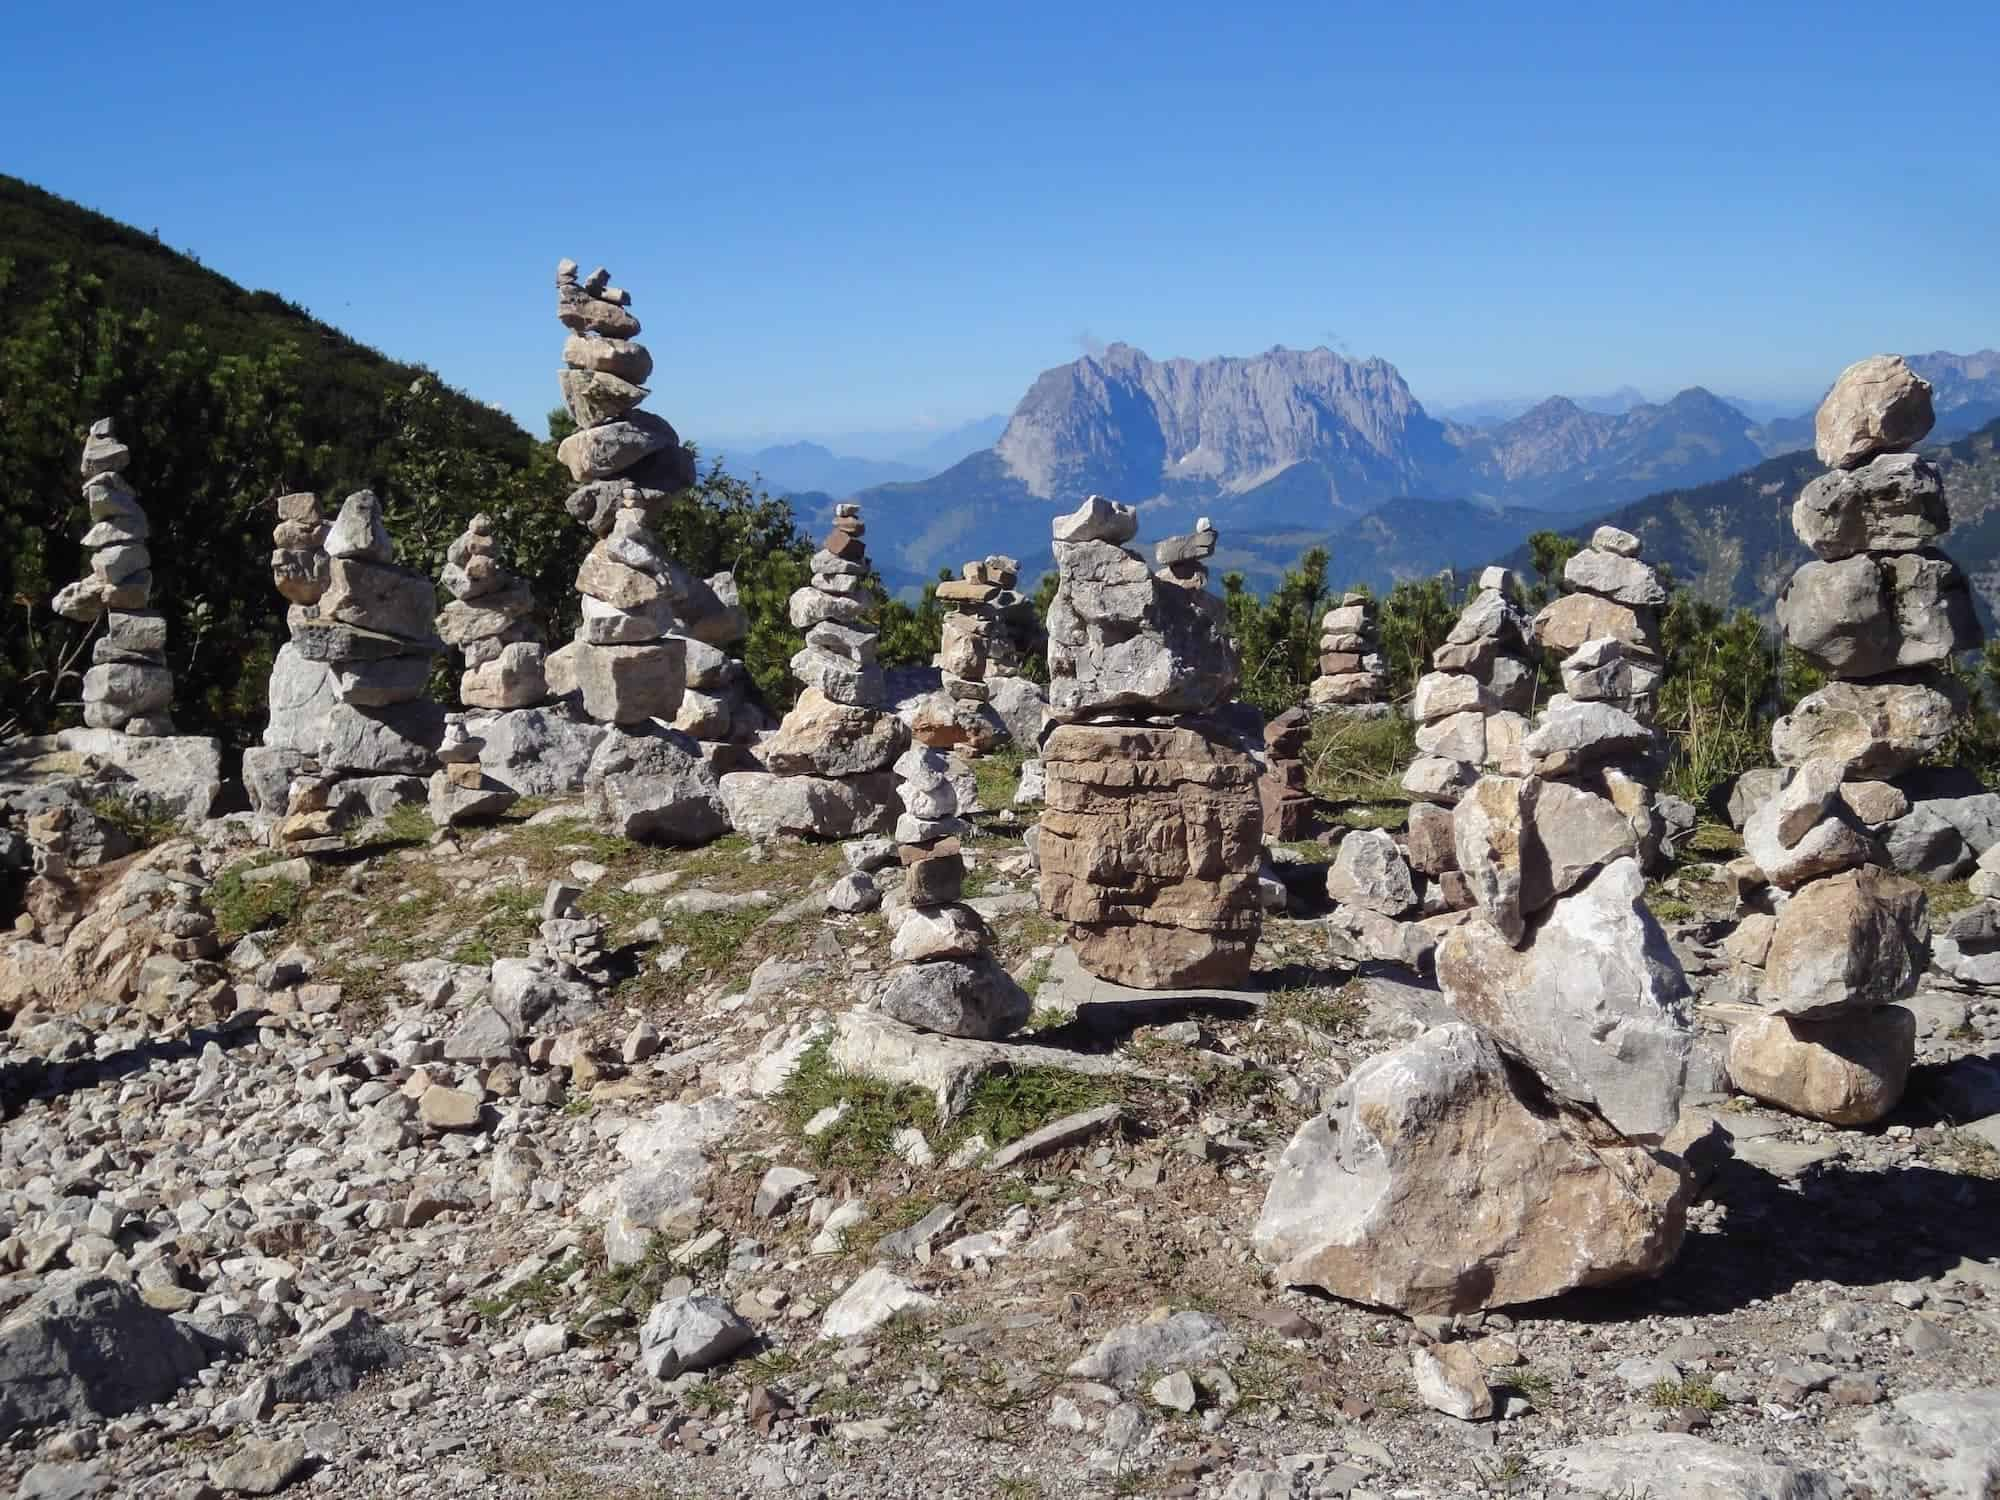 What are those funny rock structures? Understand the importance of rock cairns, who builds them, what they are and aren't for, and how to properly use them.